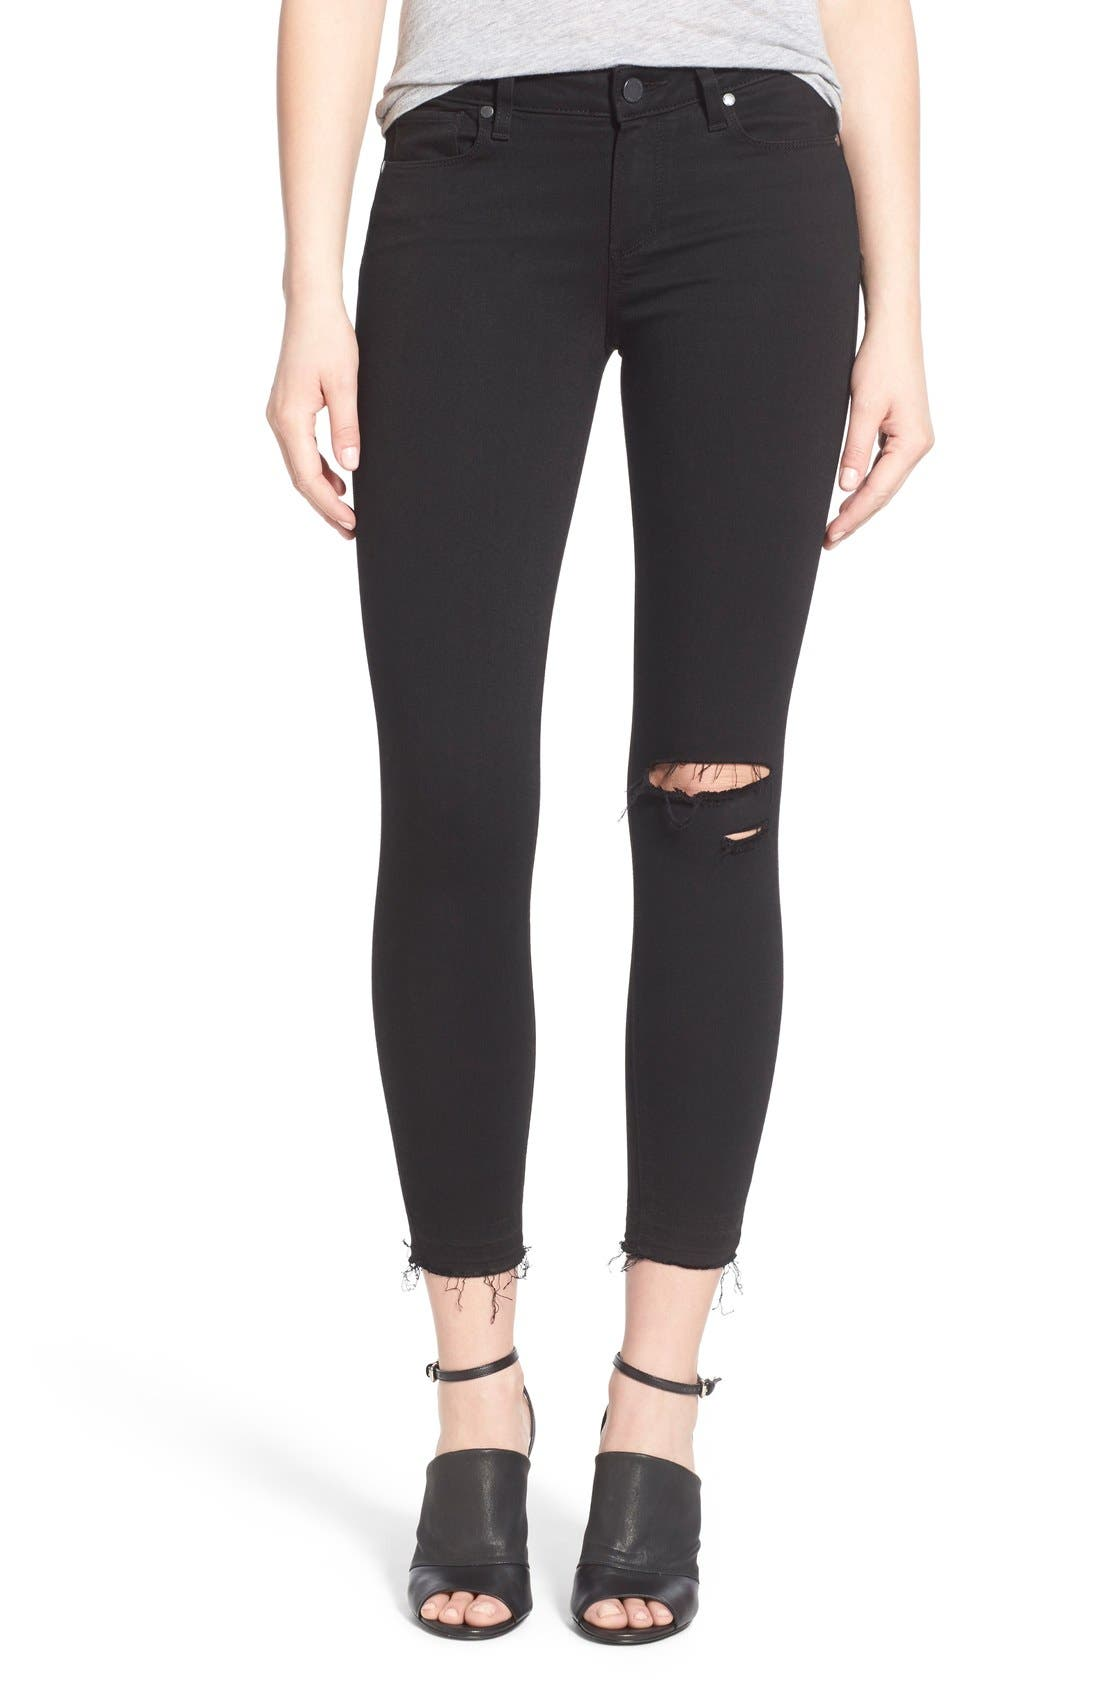 Transcend - Verdugo Crop Skinny Jeans,                         Main,                         color, 001